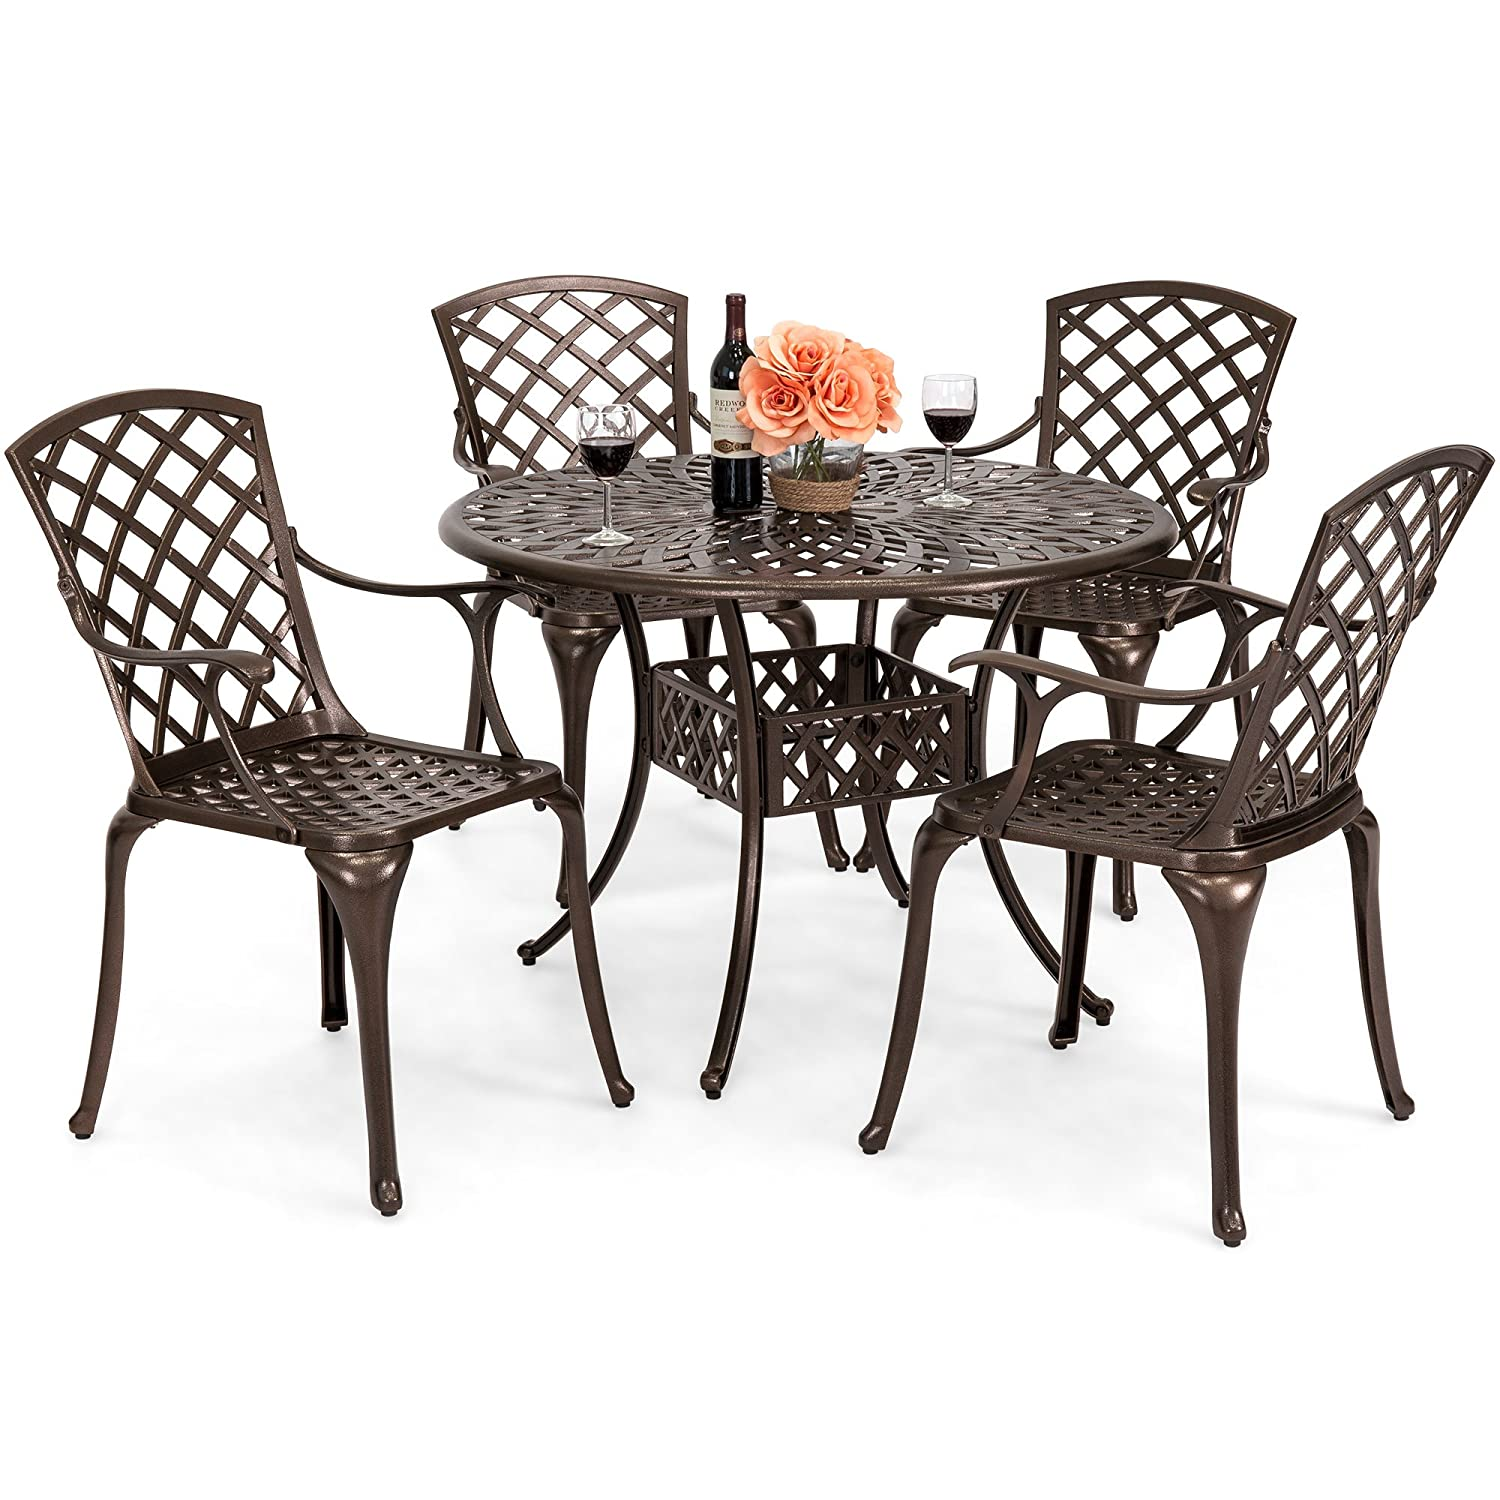 Best Choice Products 5-Piece All-Weather Cast Aluminum Patio Dining Set w 4 Chairs, Umbrella Hole, Lattice Weave Design